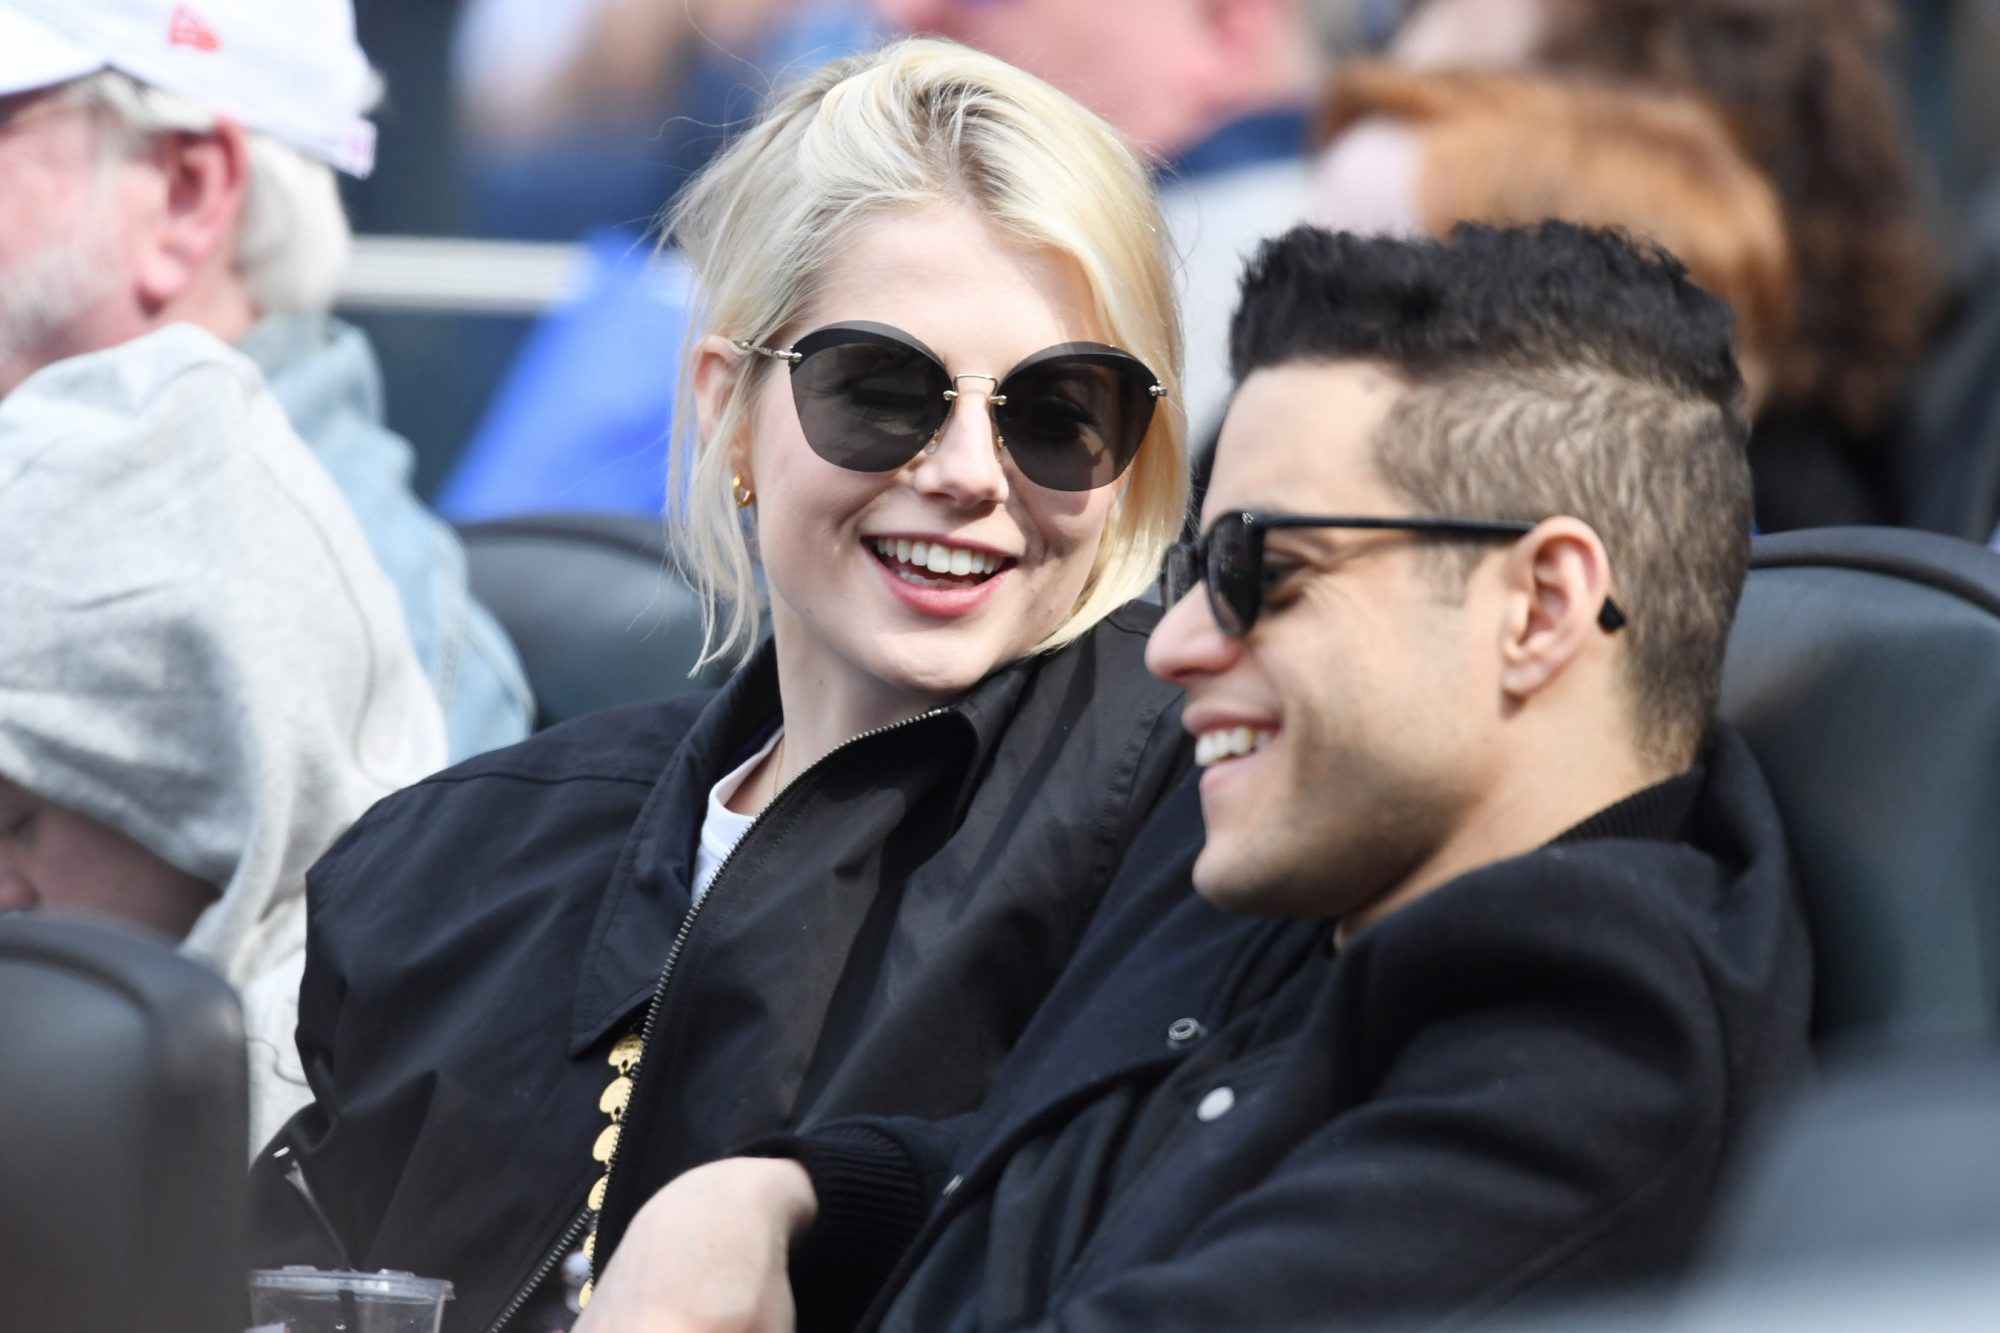 Rami Malek and Lucy BoyntonCredit: New York Mets